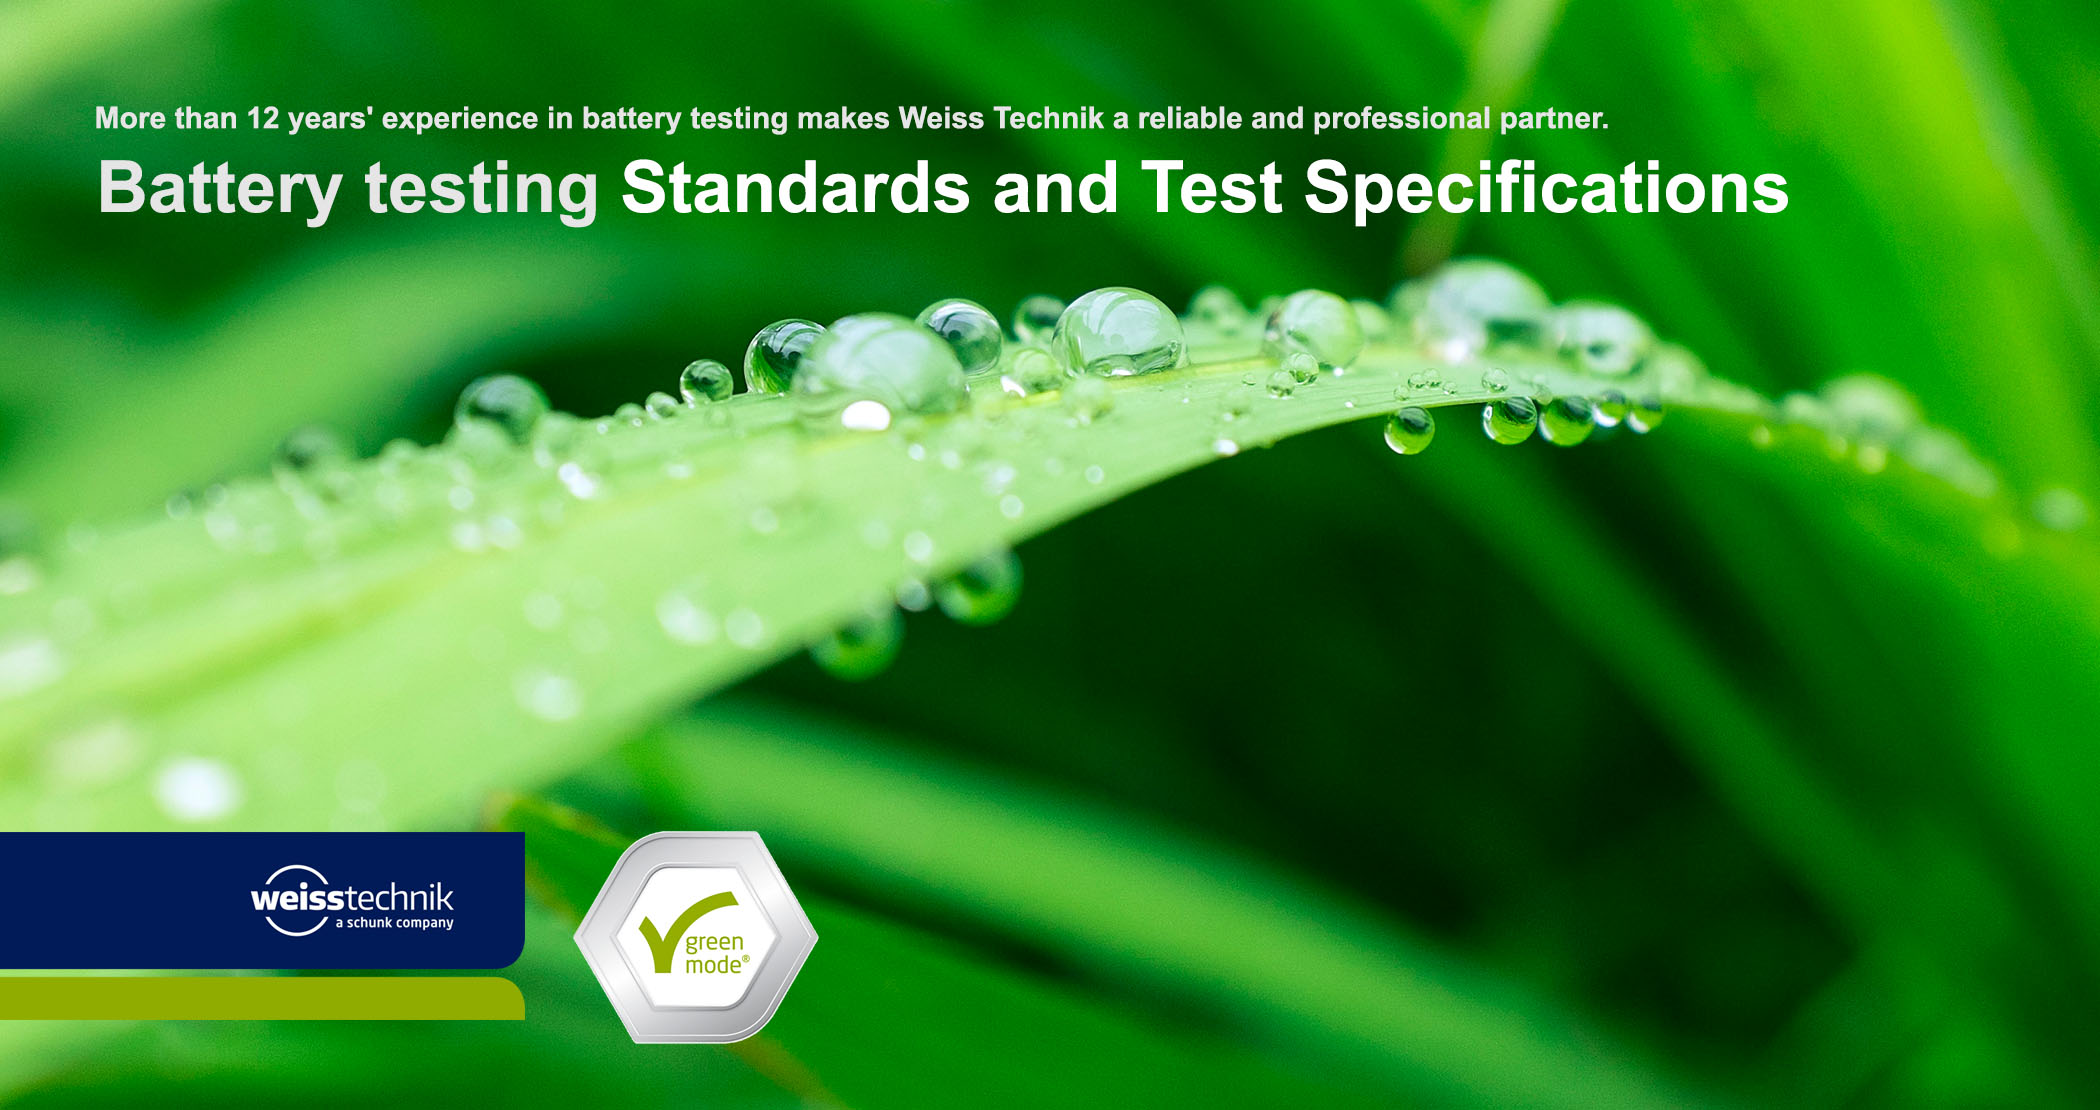 Battery testing standards and test specifications